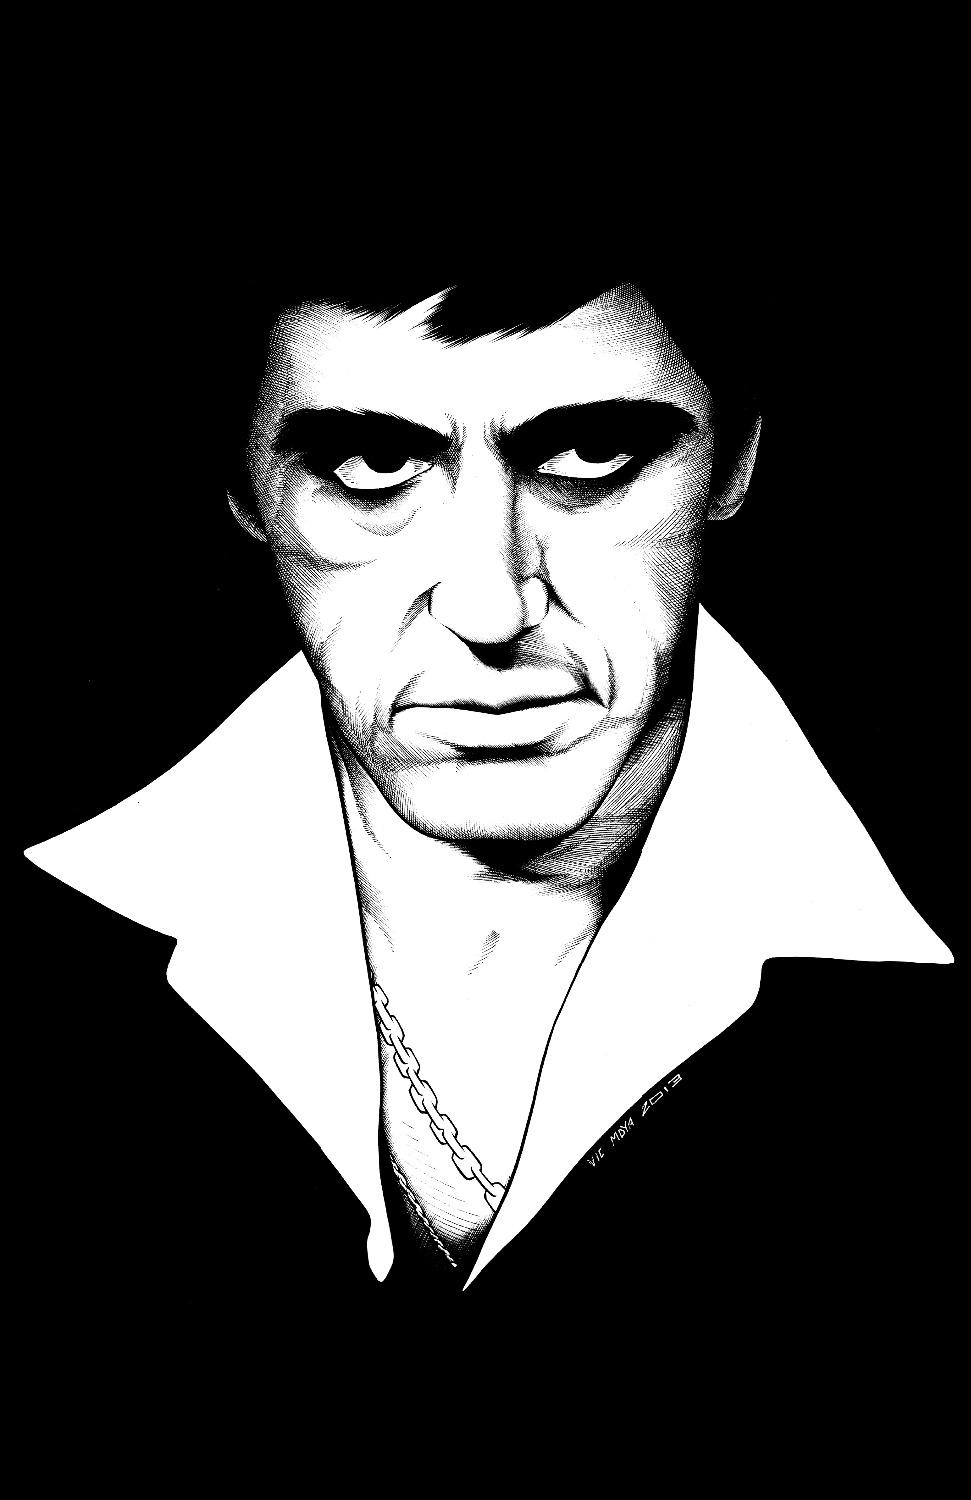 Scarface money power respect vinyl wall decal for home decore - L 82 Custom Scarface Poster Home Decor Modern For Bedroom Wall Poster Size 40x60cm Wall